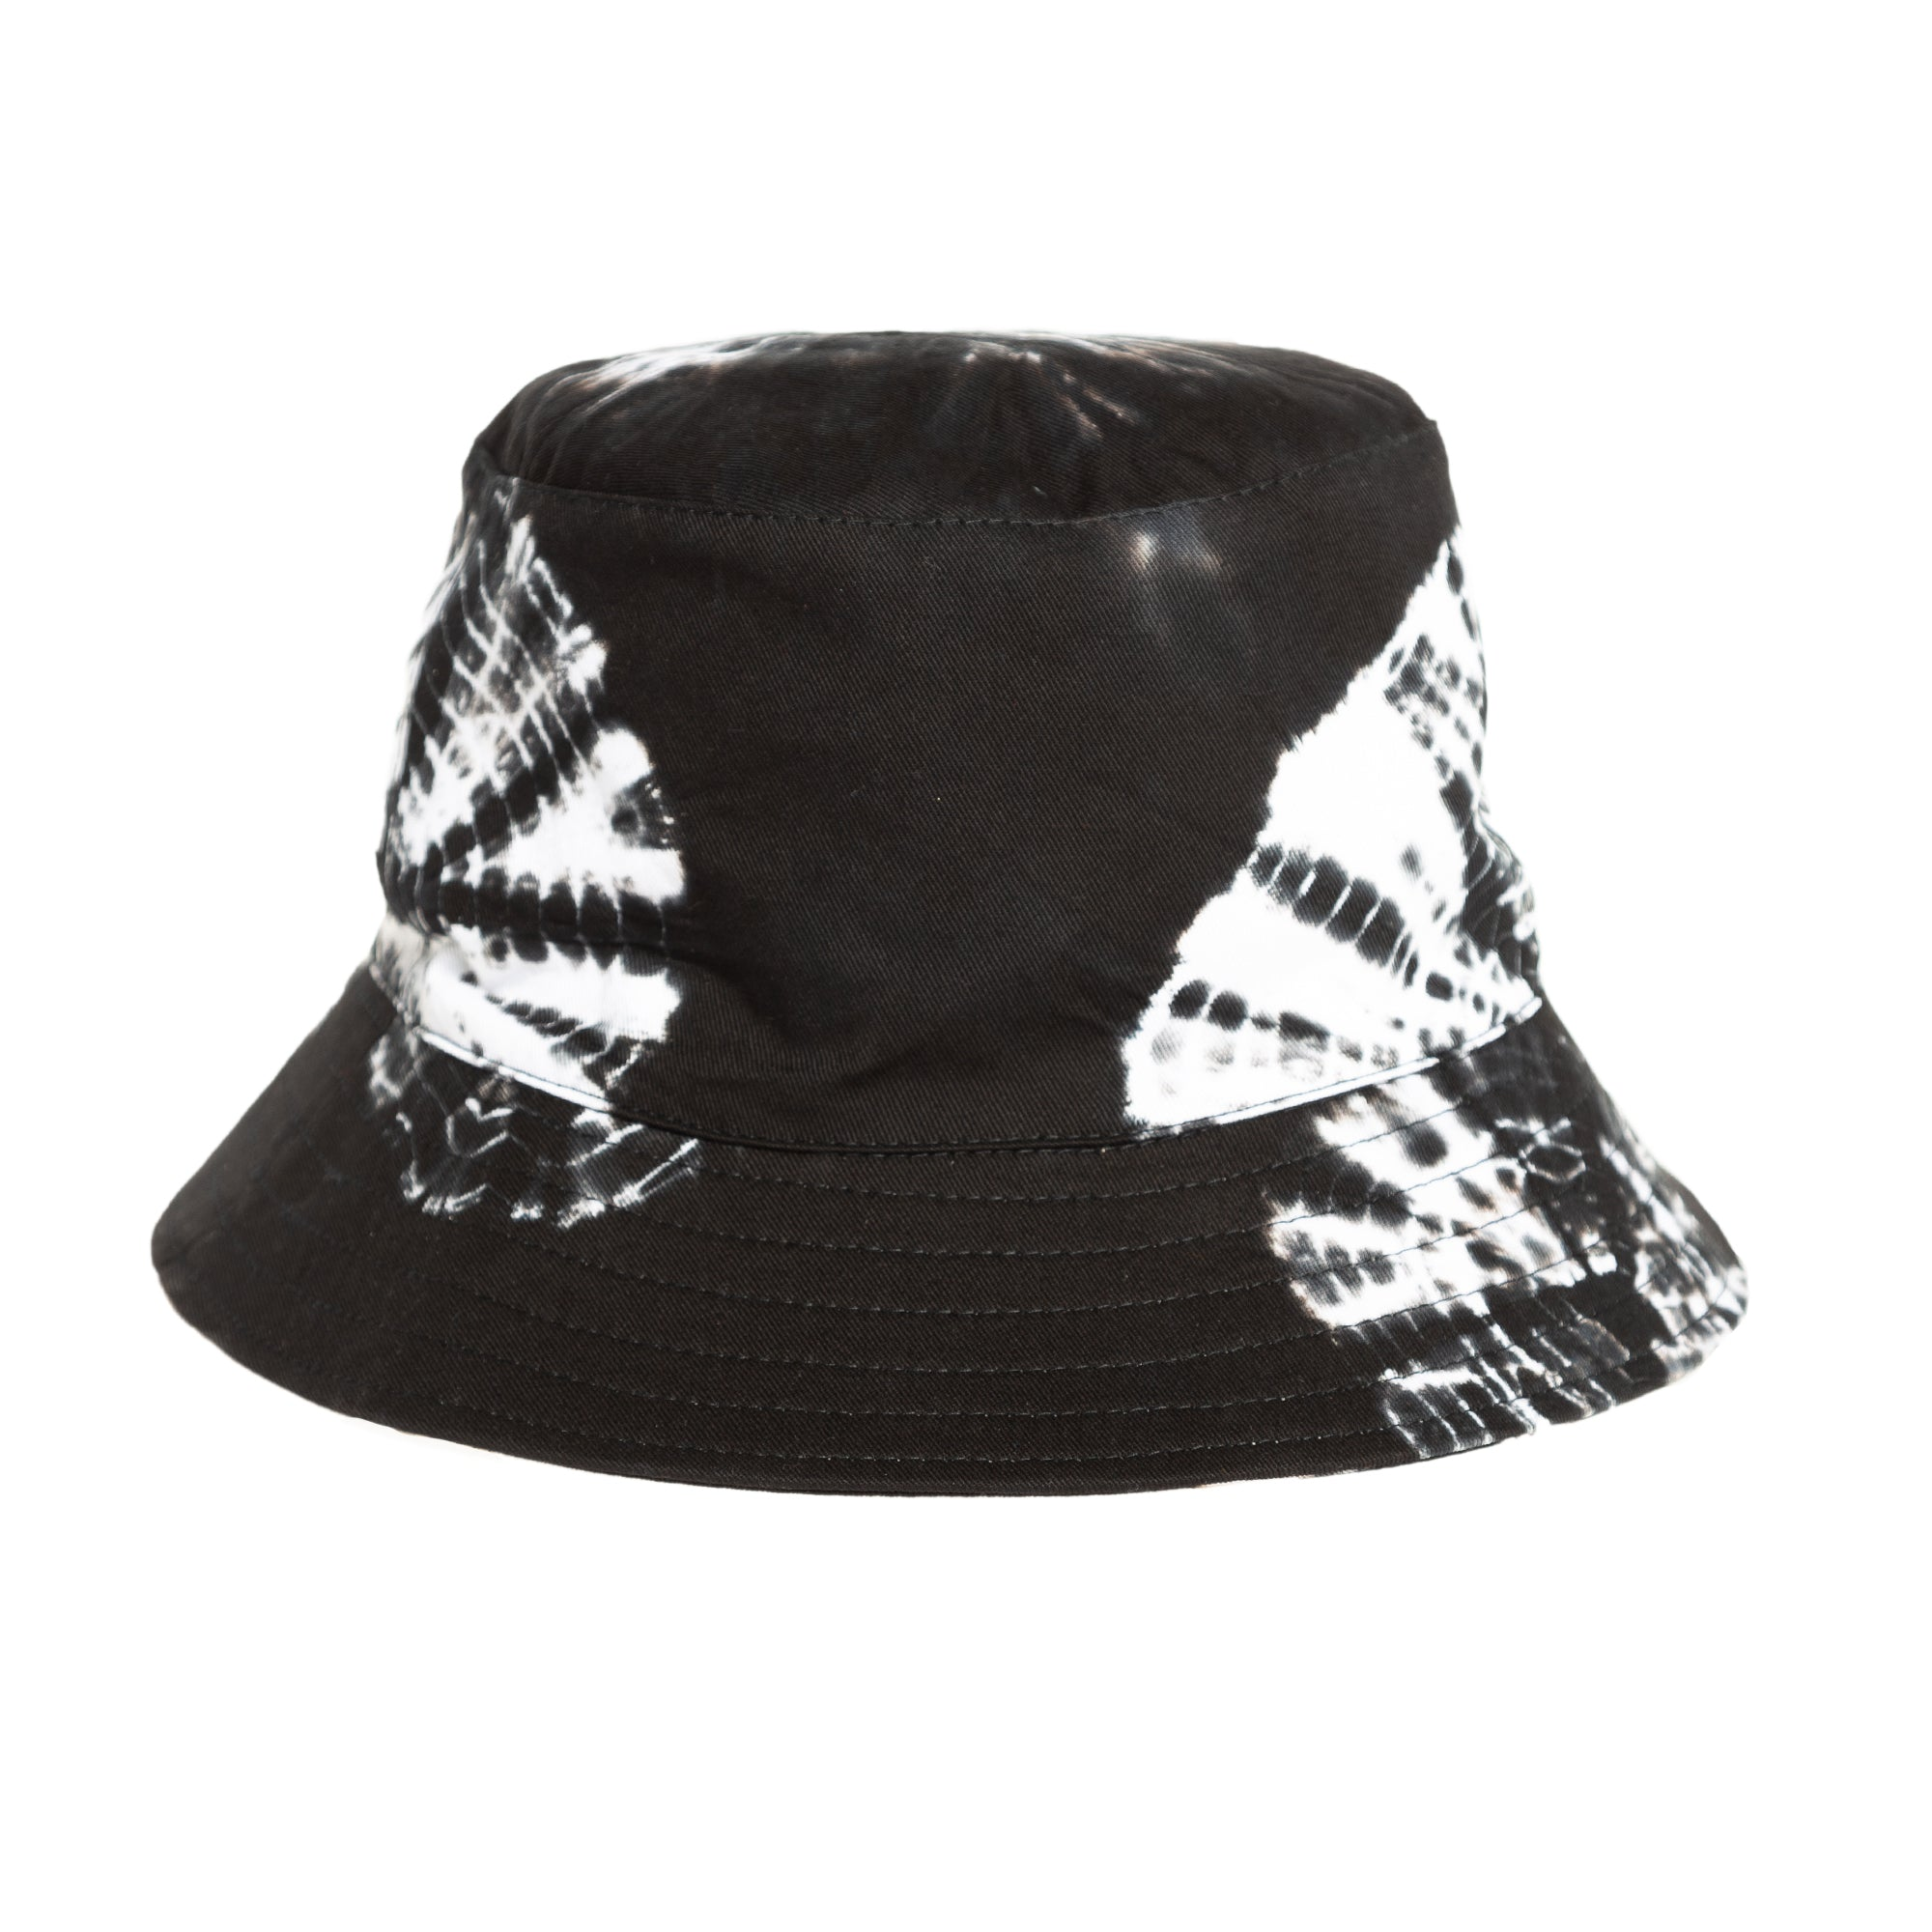 Hat Hut Bucket Trend Batik Summer Sommer